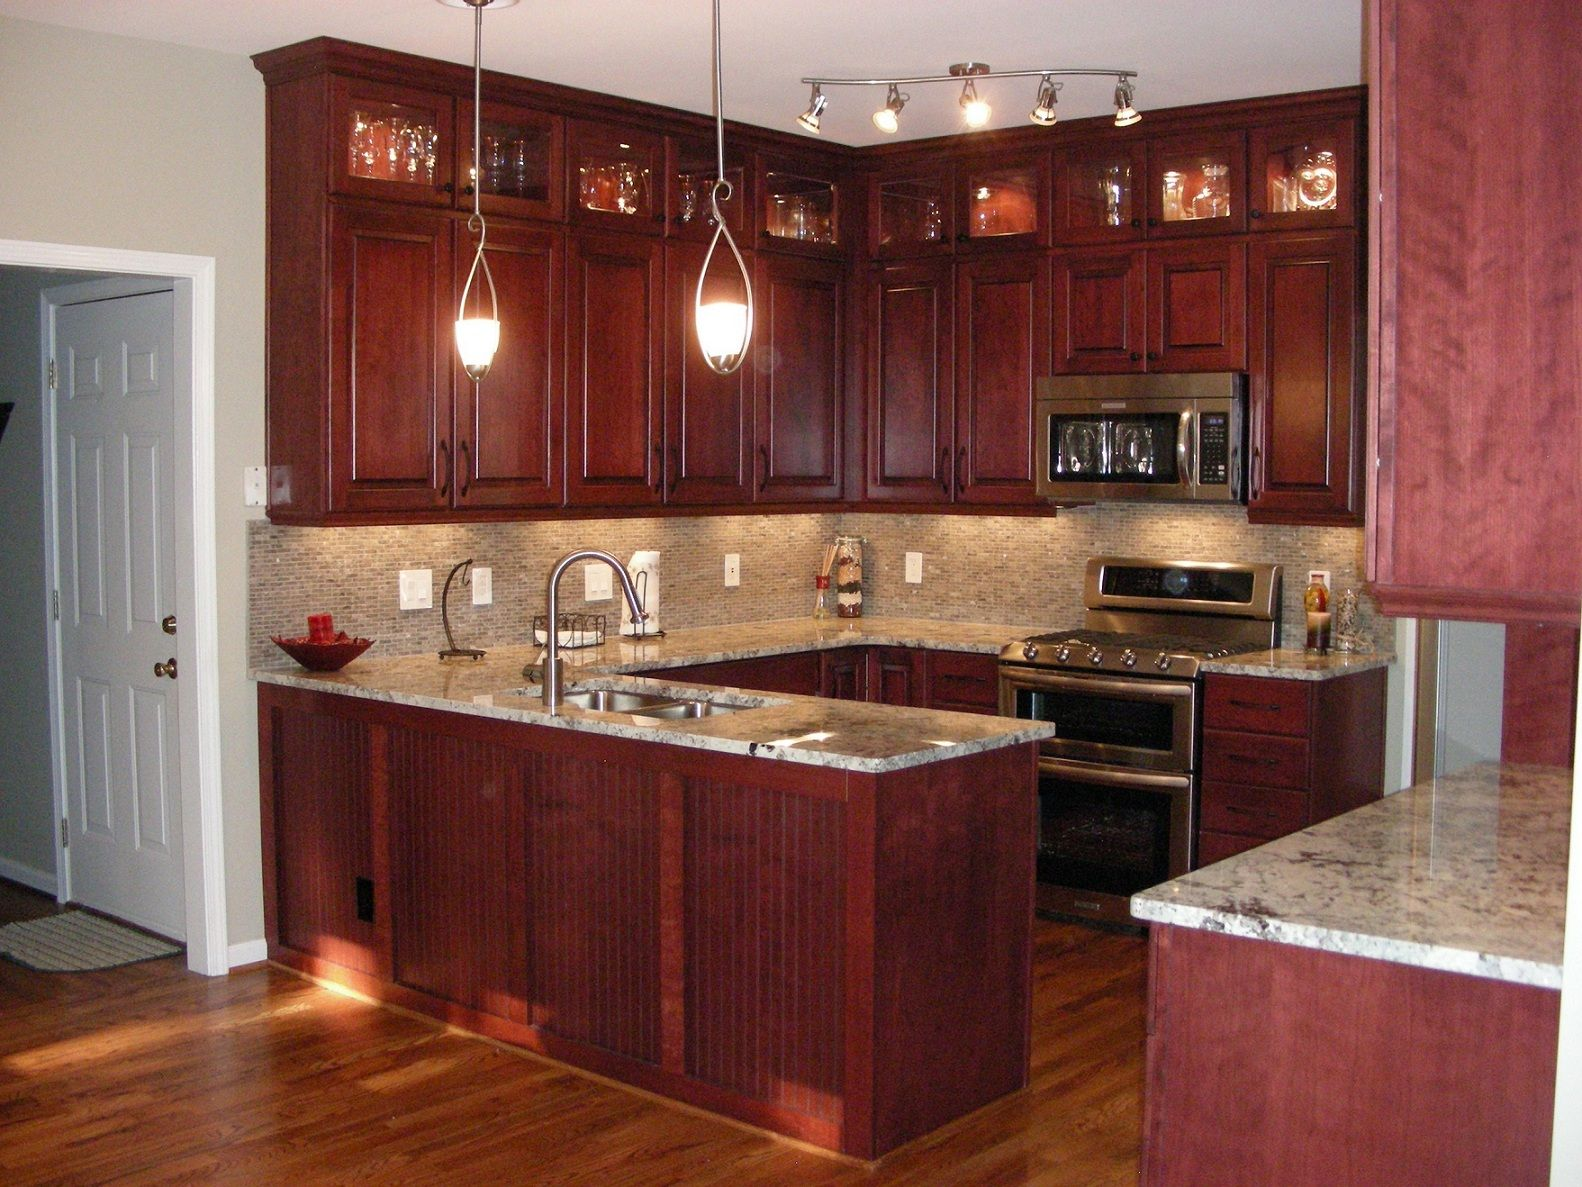 Genial Cherry Kitchen Cabinets In A Thoughtful Design Work Hard To Make This House  A Home